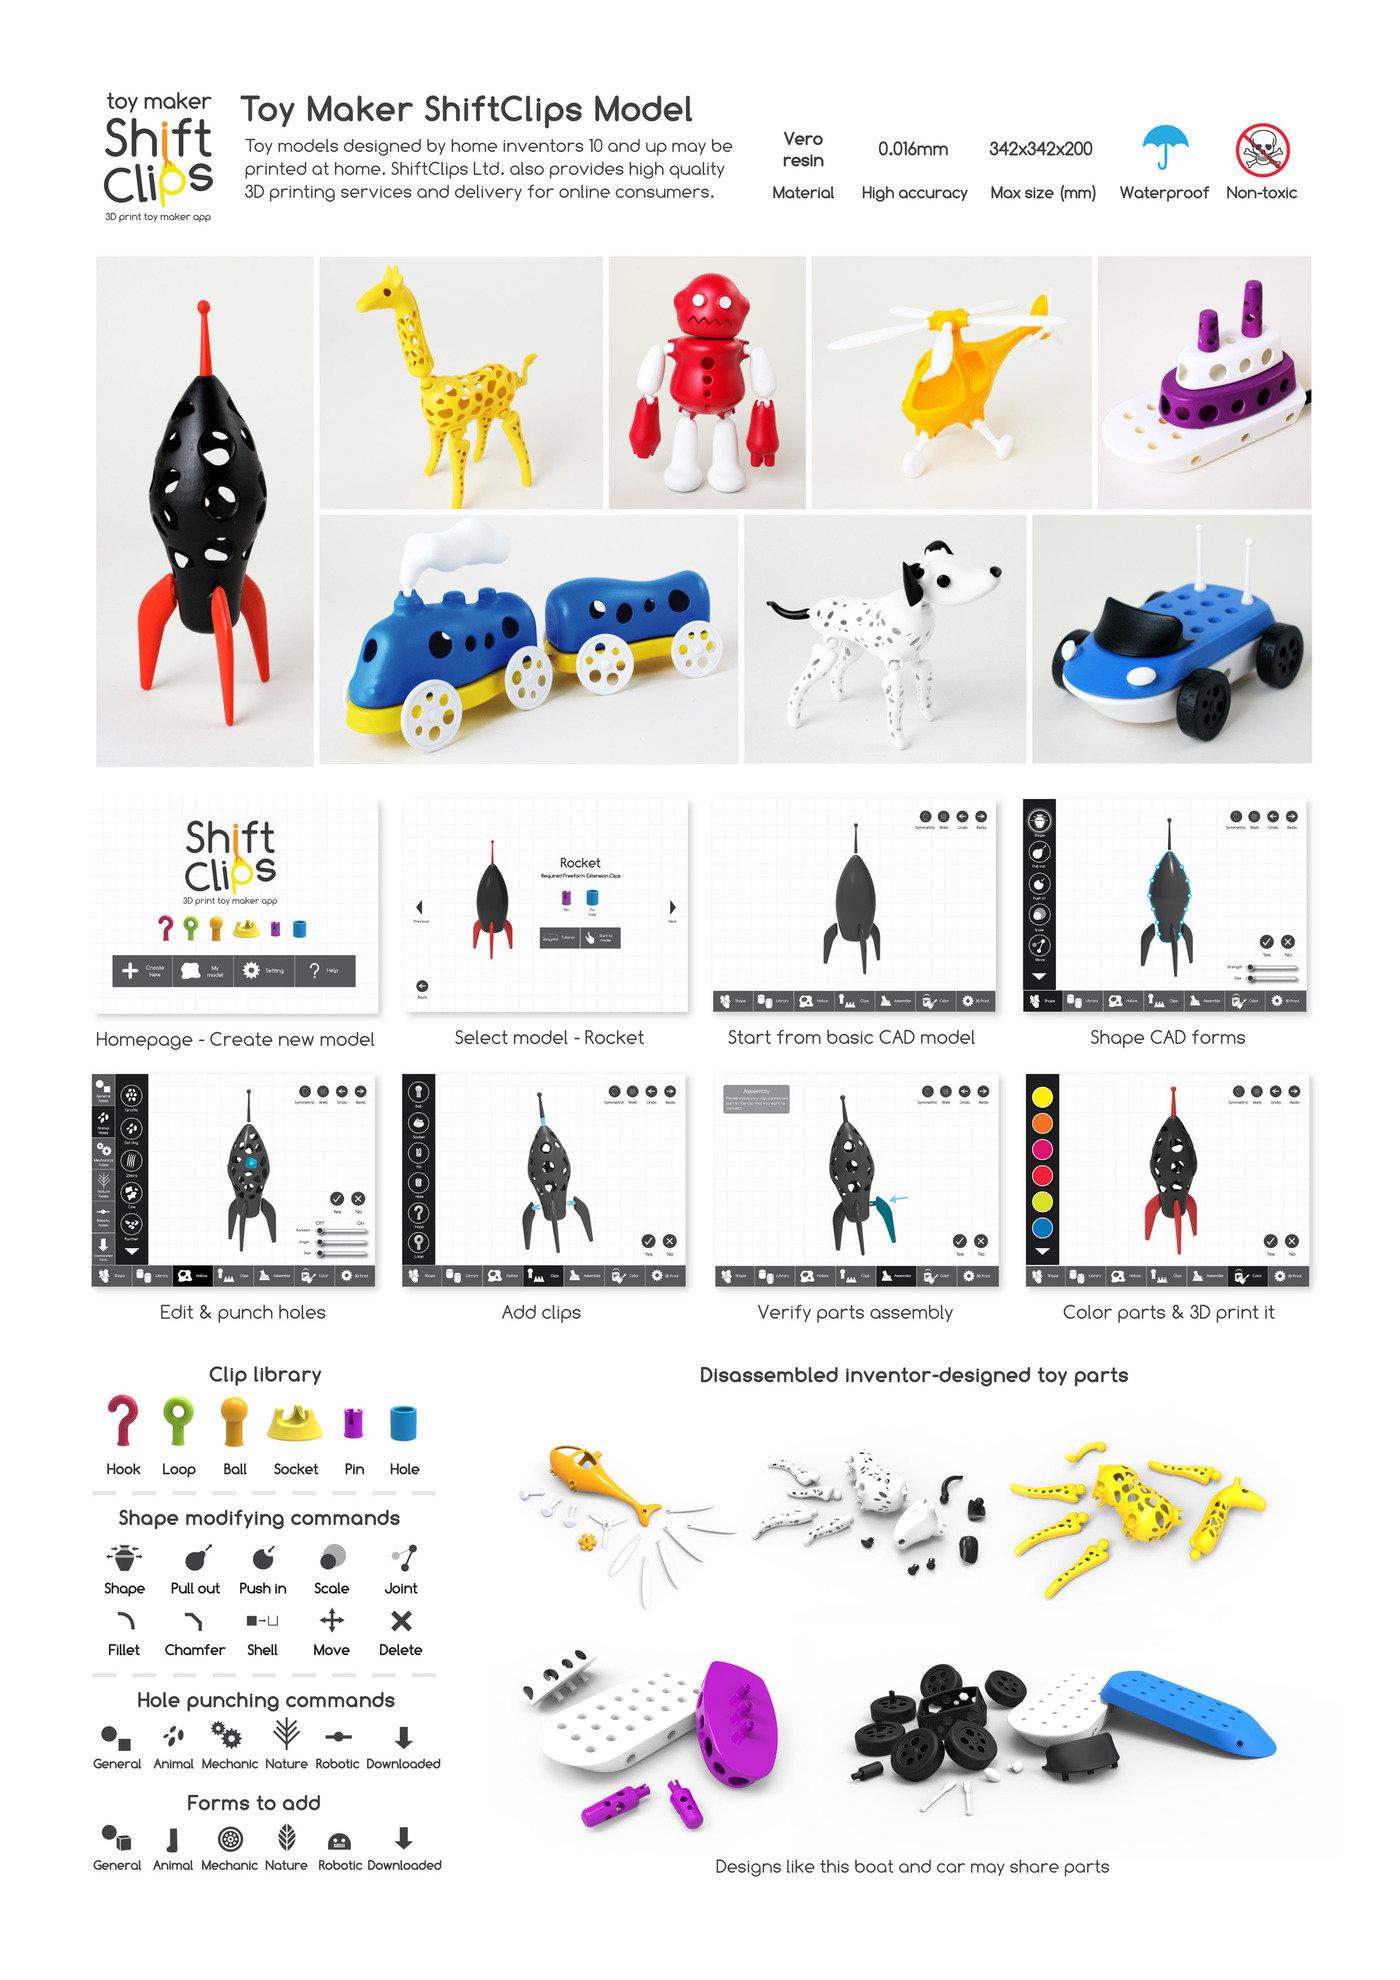 Final year project - Toy maker Shiftclips by Sam Wong at